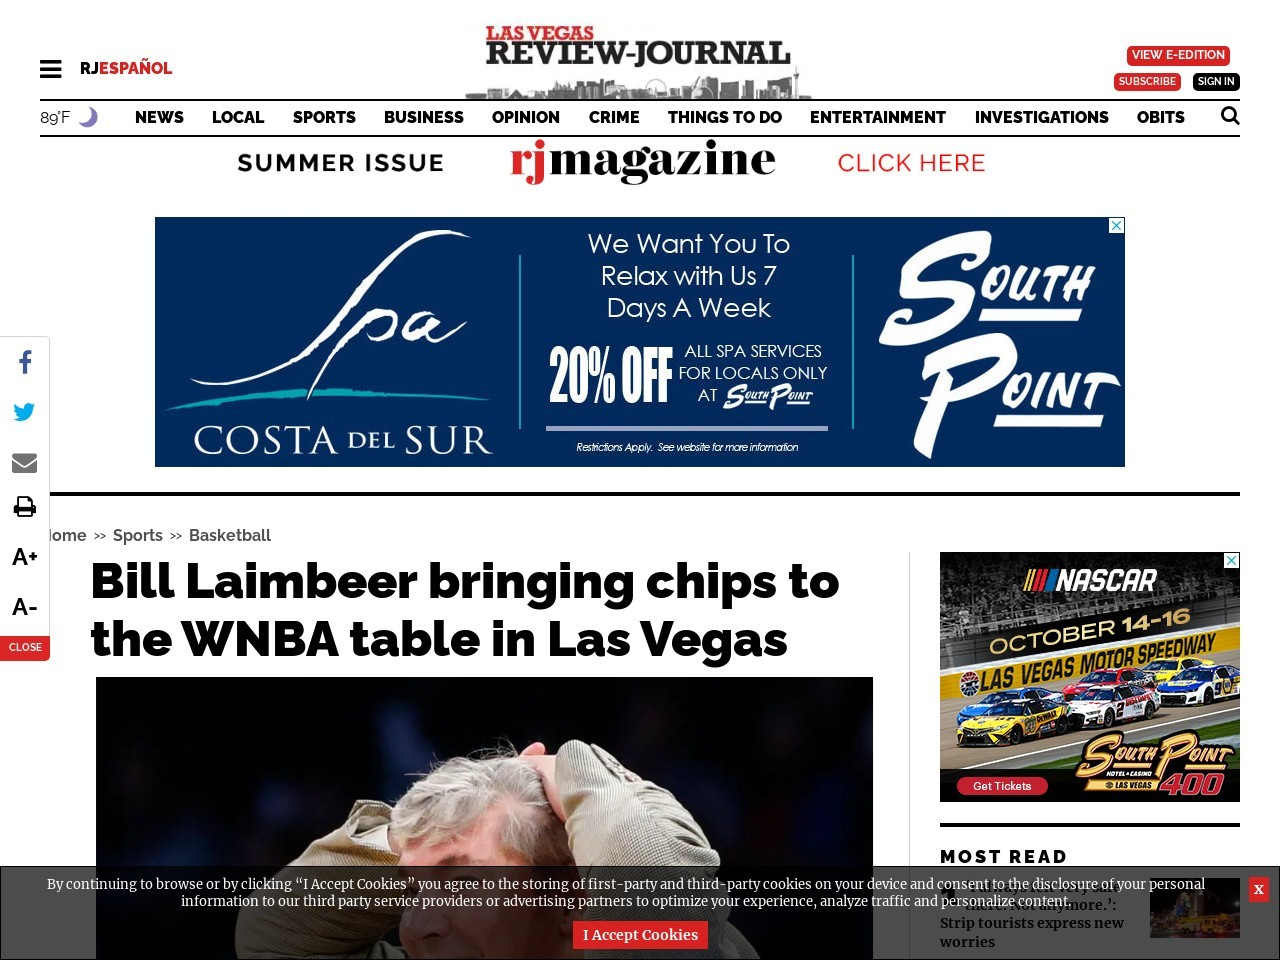 Bill Laimbeer bringing chips to the WNBA table in Las Vegas